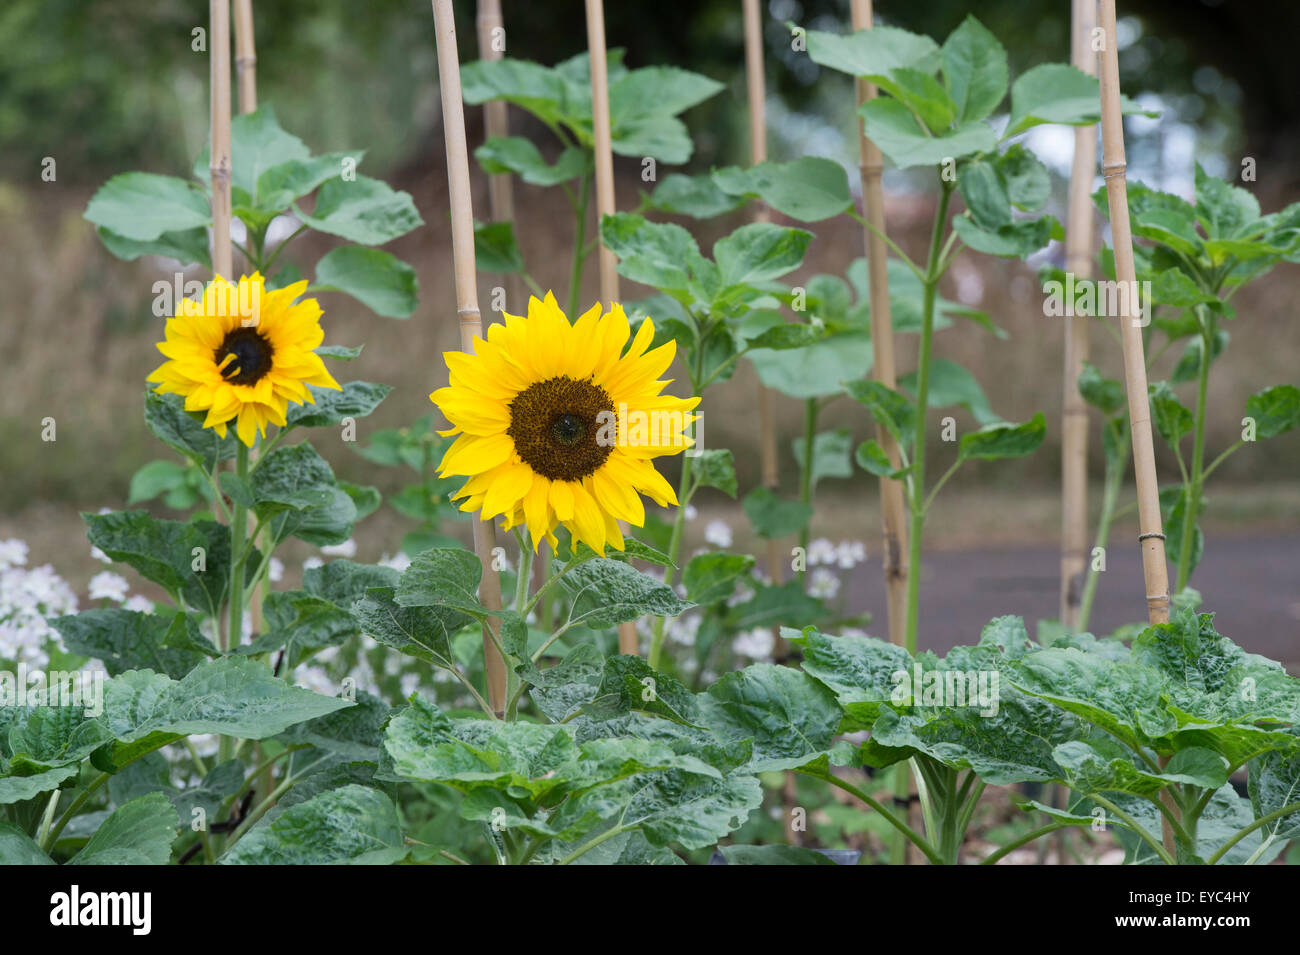 Helianthus annuus. Bamboo canes supporting Sunflowers 'Happy Face' - Stock Image